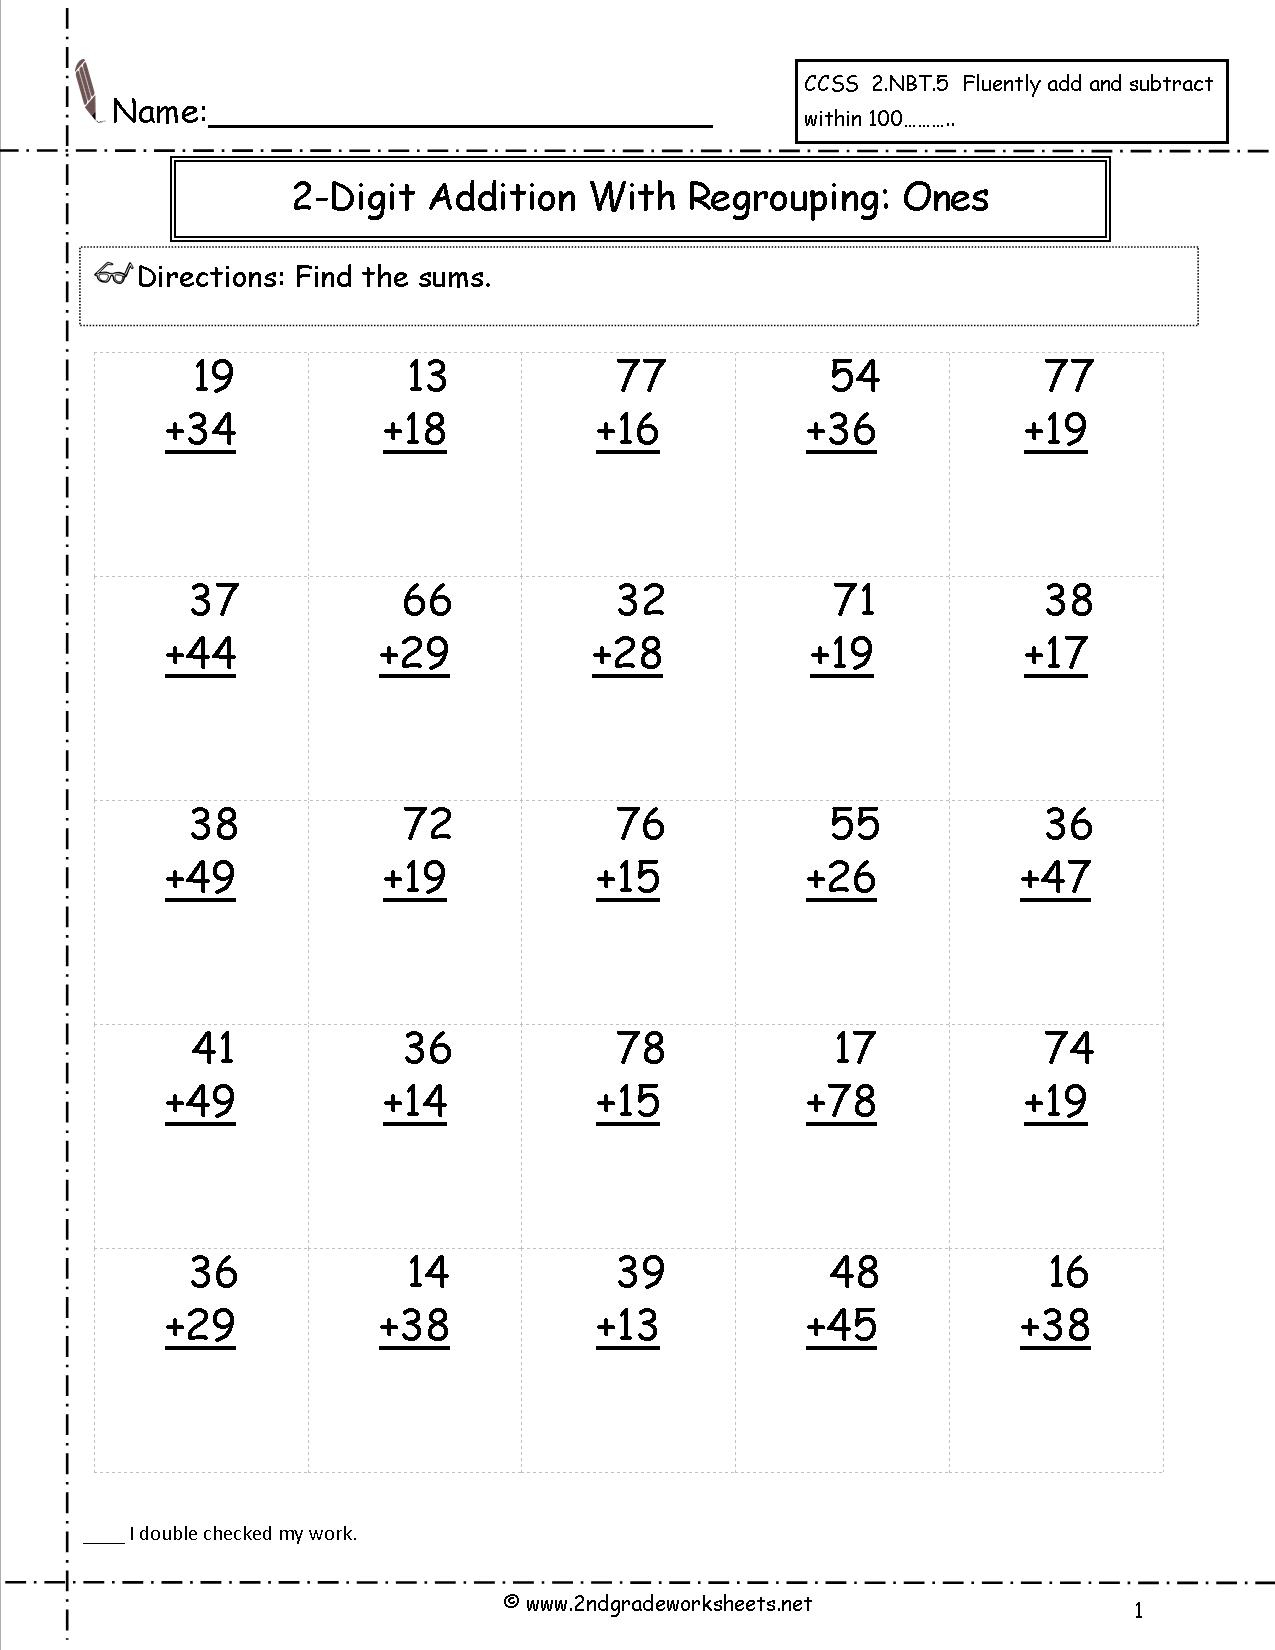 Free Math Worksheets And Printouts - Free Printable Addition Worksheets